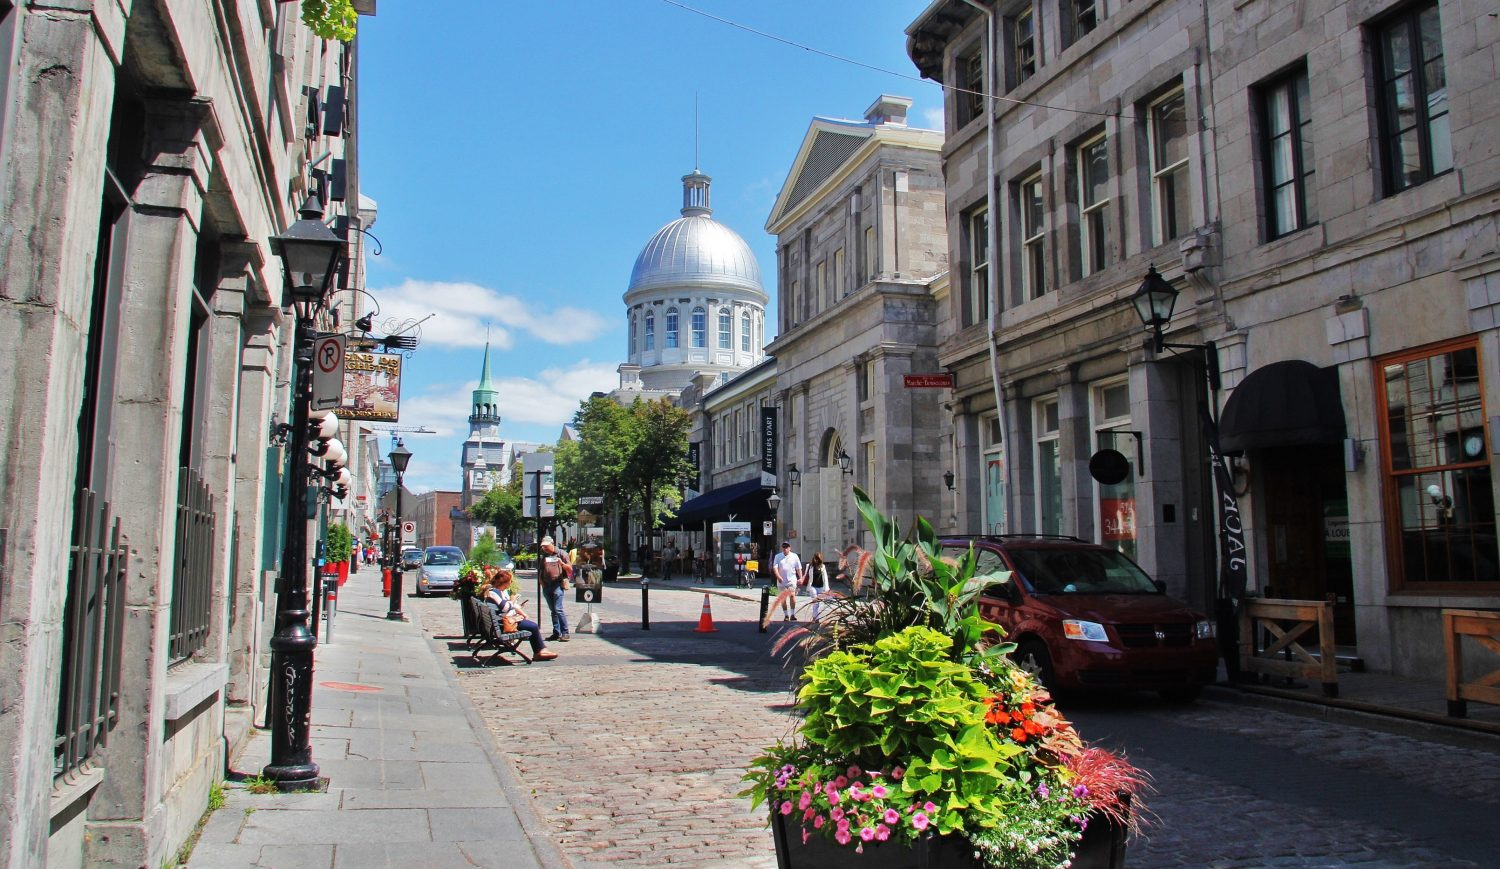 montreal city by Montreal design guide  montreal design guide MONTREAL DESIGN GUIDE 2019 Montreal Old Town